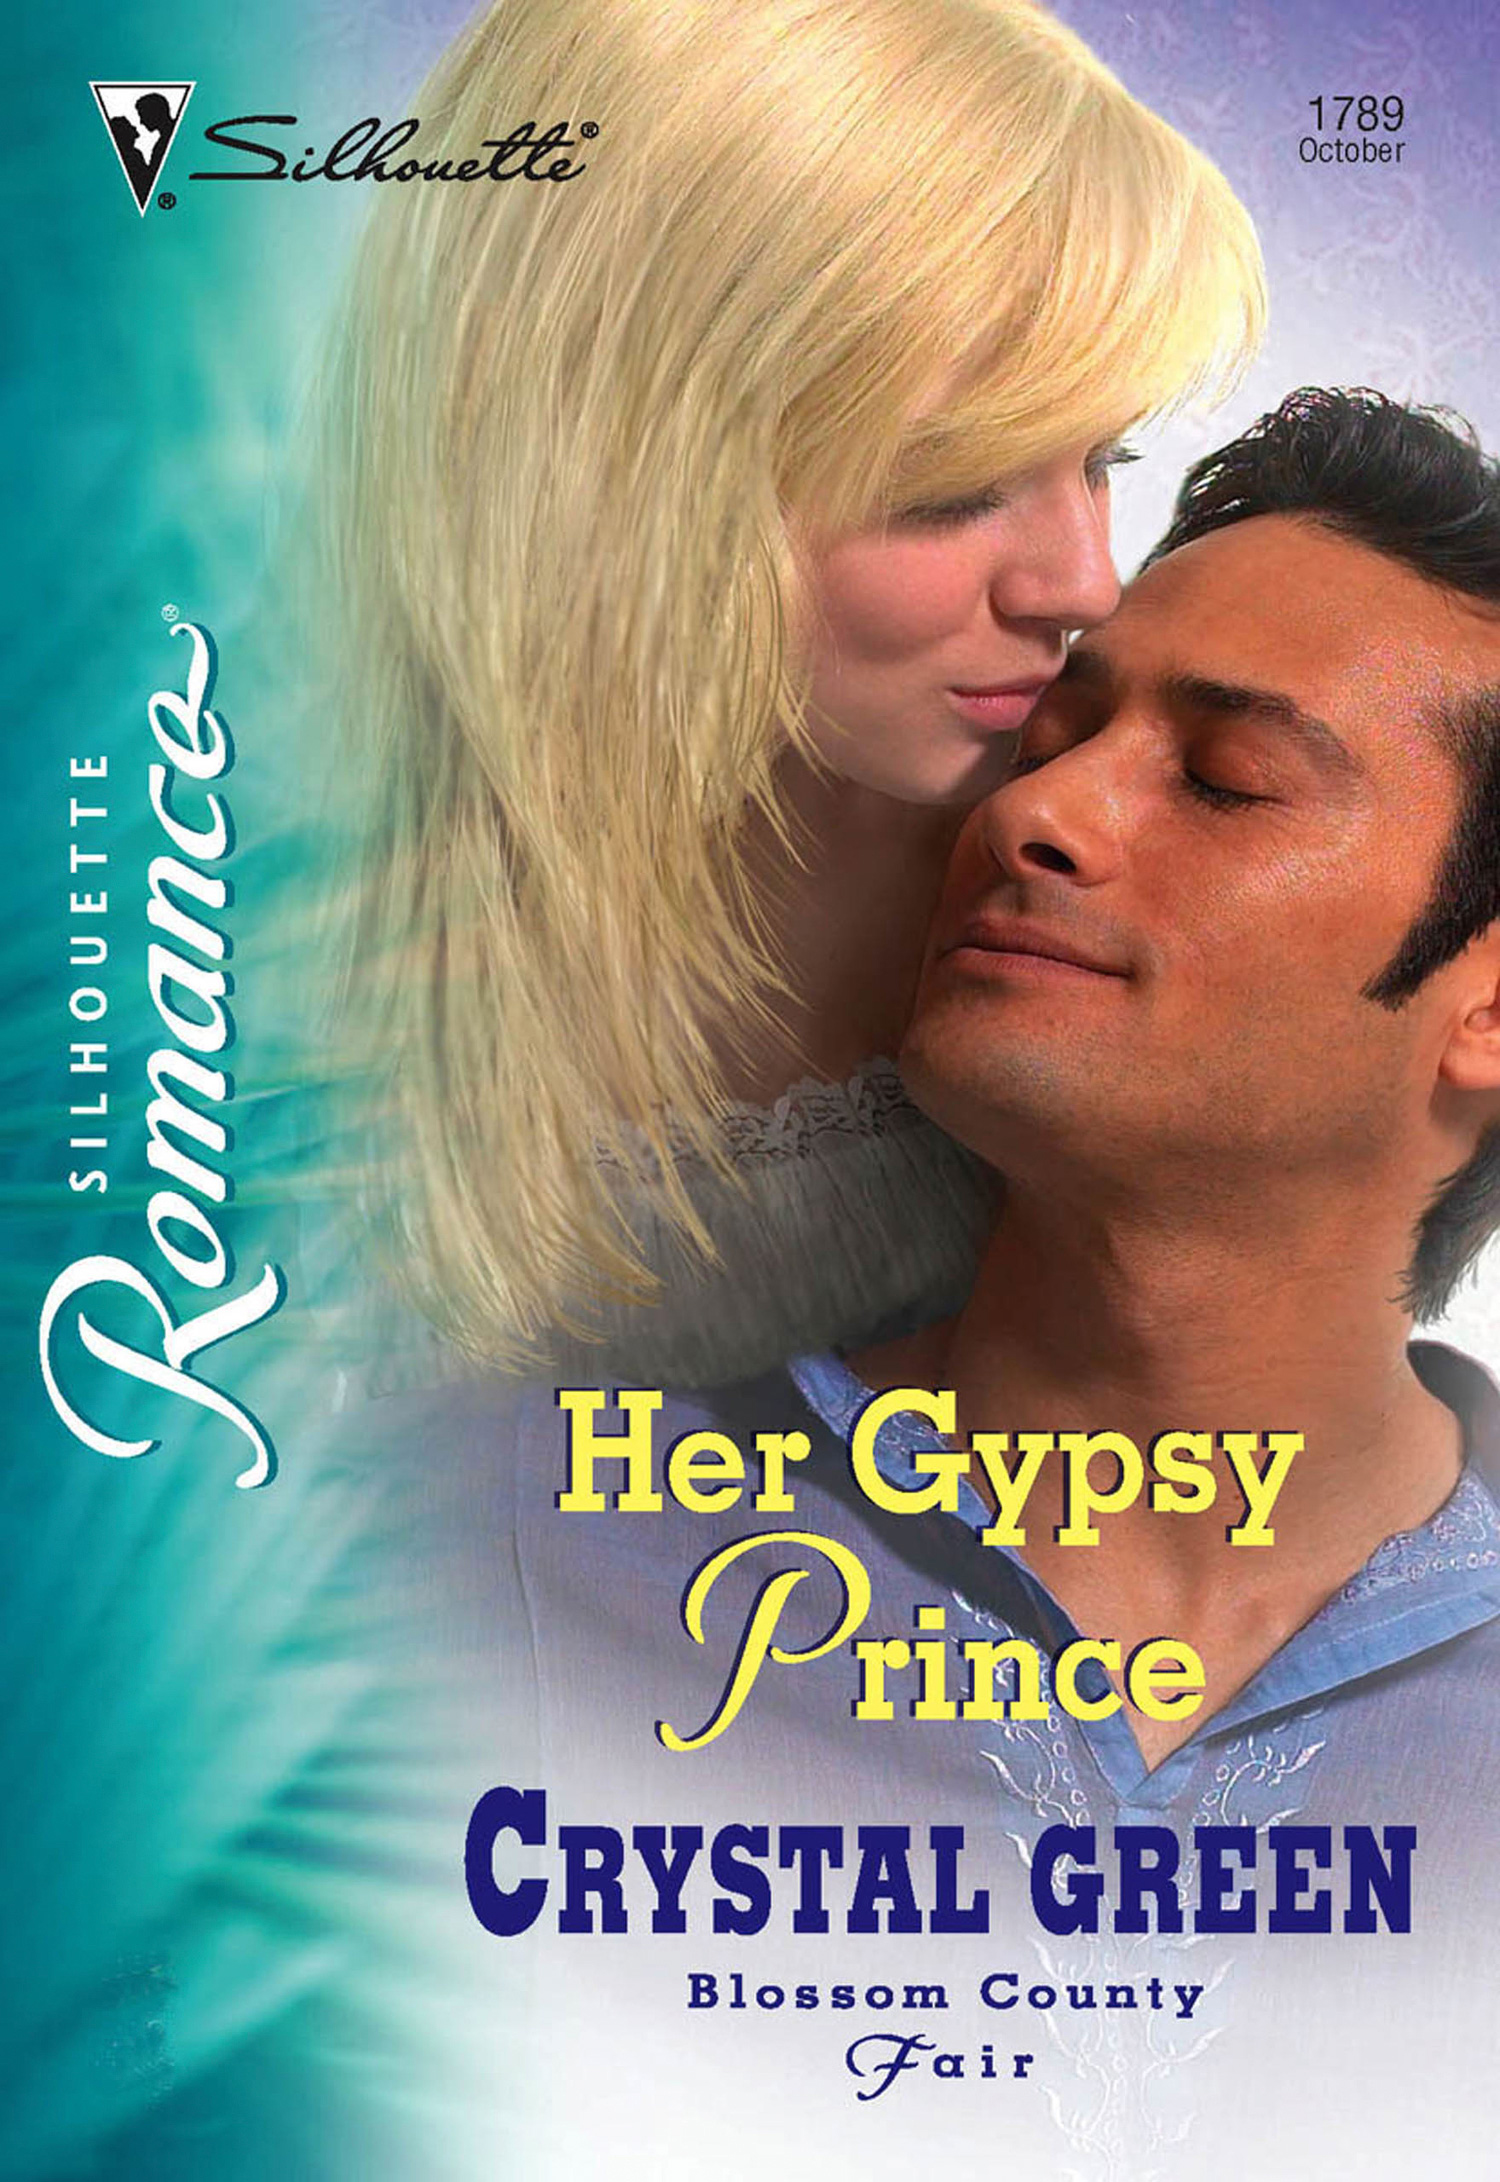 Her Gypsy Prince